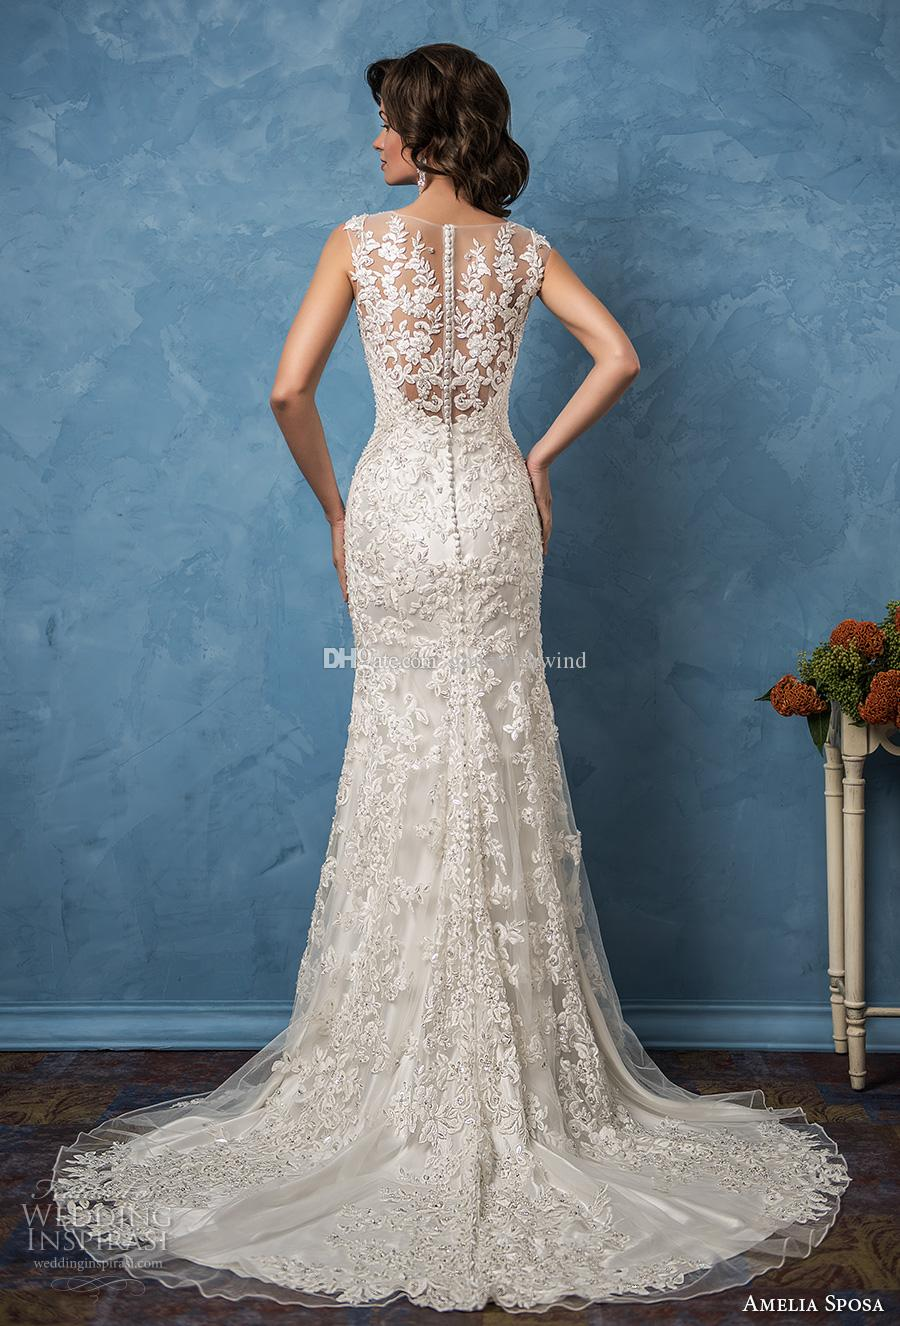 Mermaid Wedding Dresses 2017 Amelia Sposa Bridal Gowns Sleeveless ...